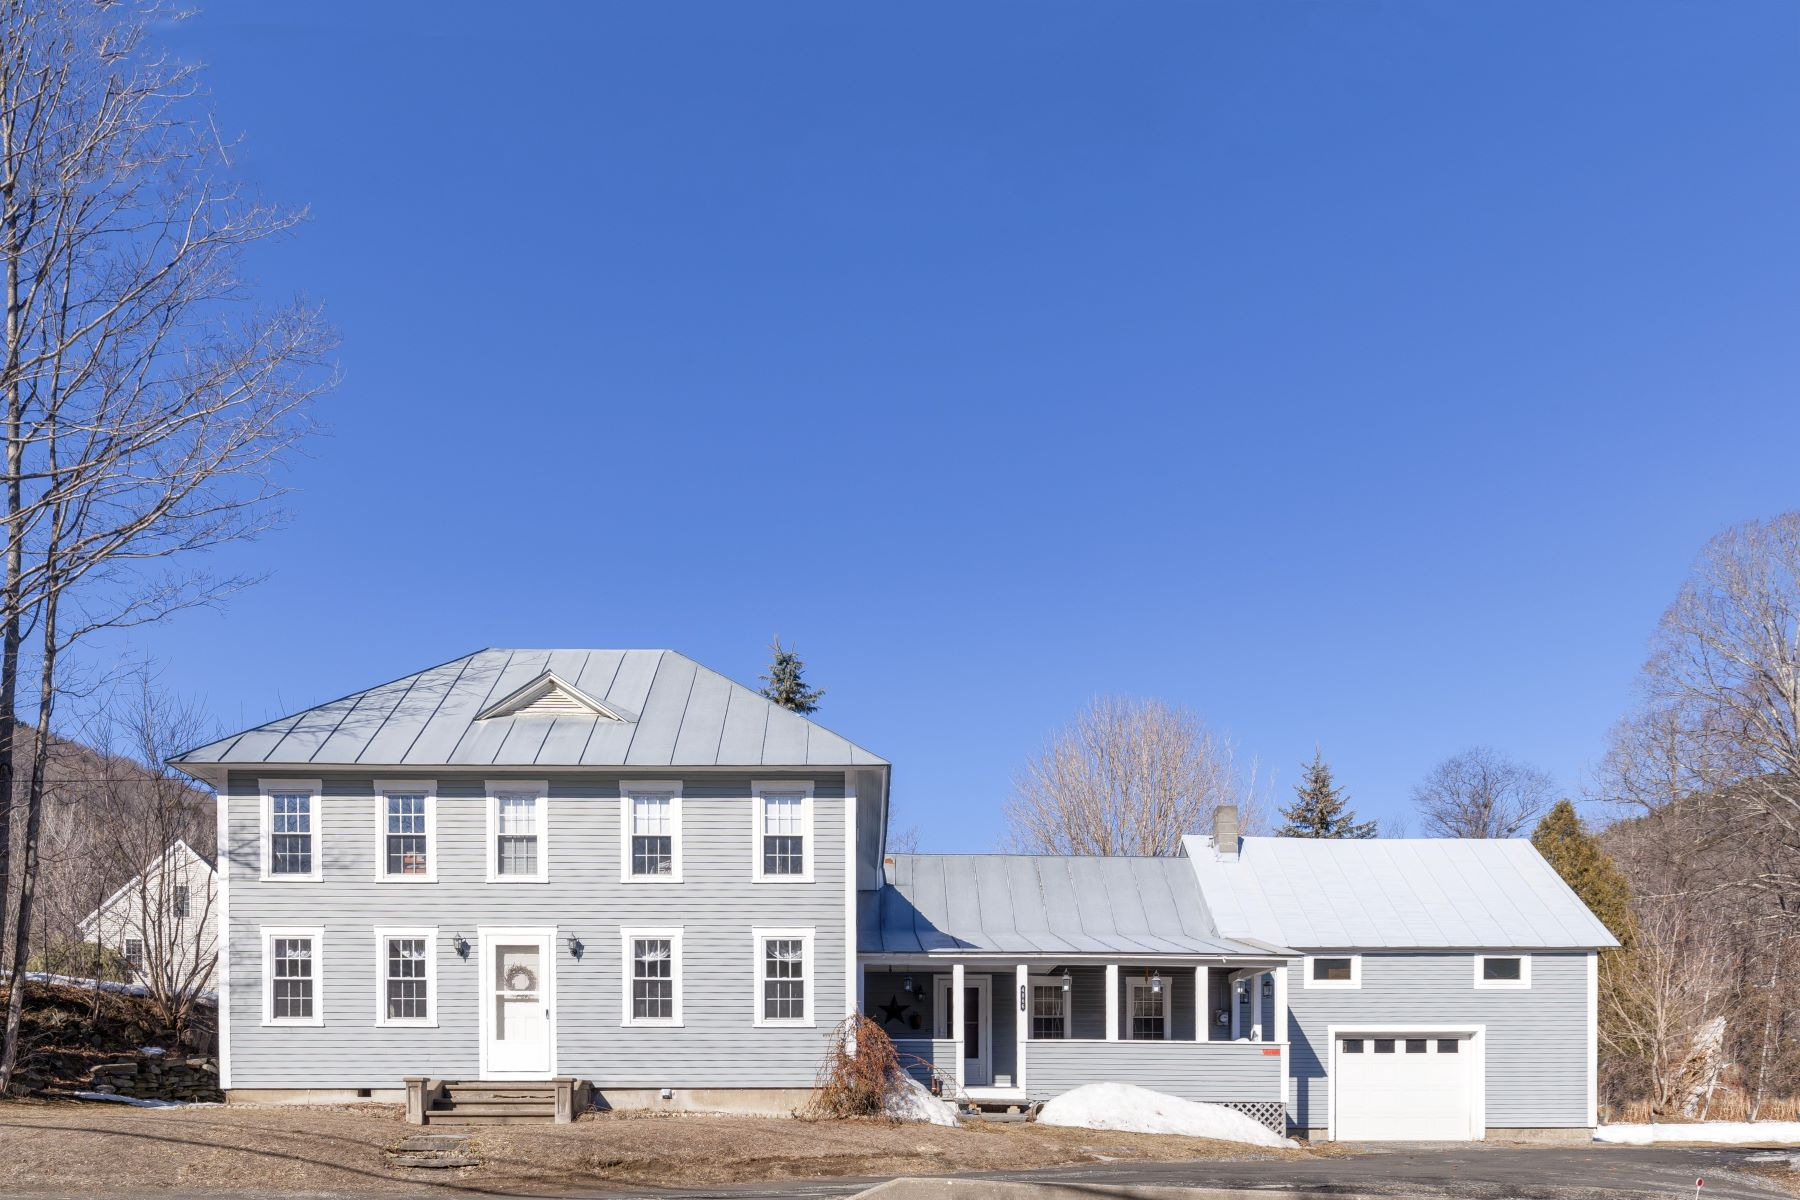 Single Family Home for Sale at 4866 Vermont Rt 14, Sharon Sharon, Vermont, 05065 United States